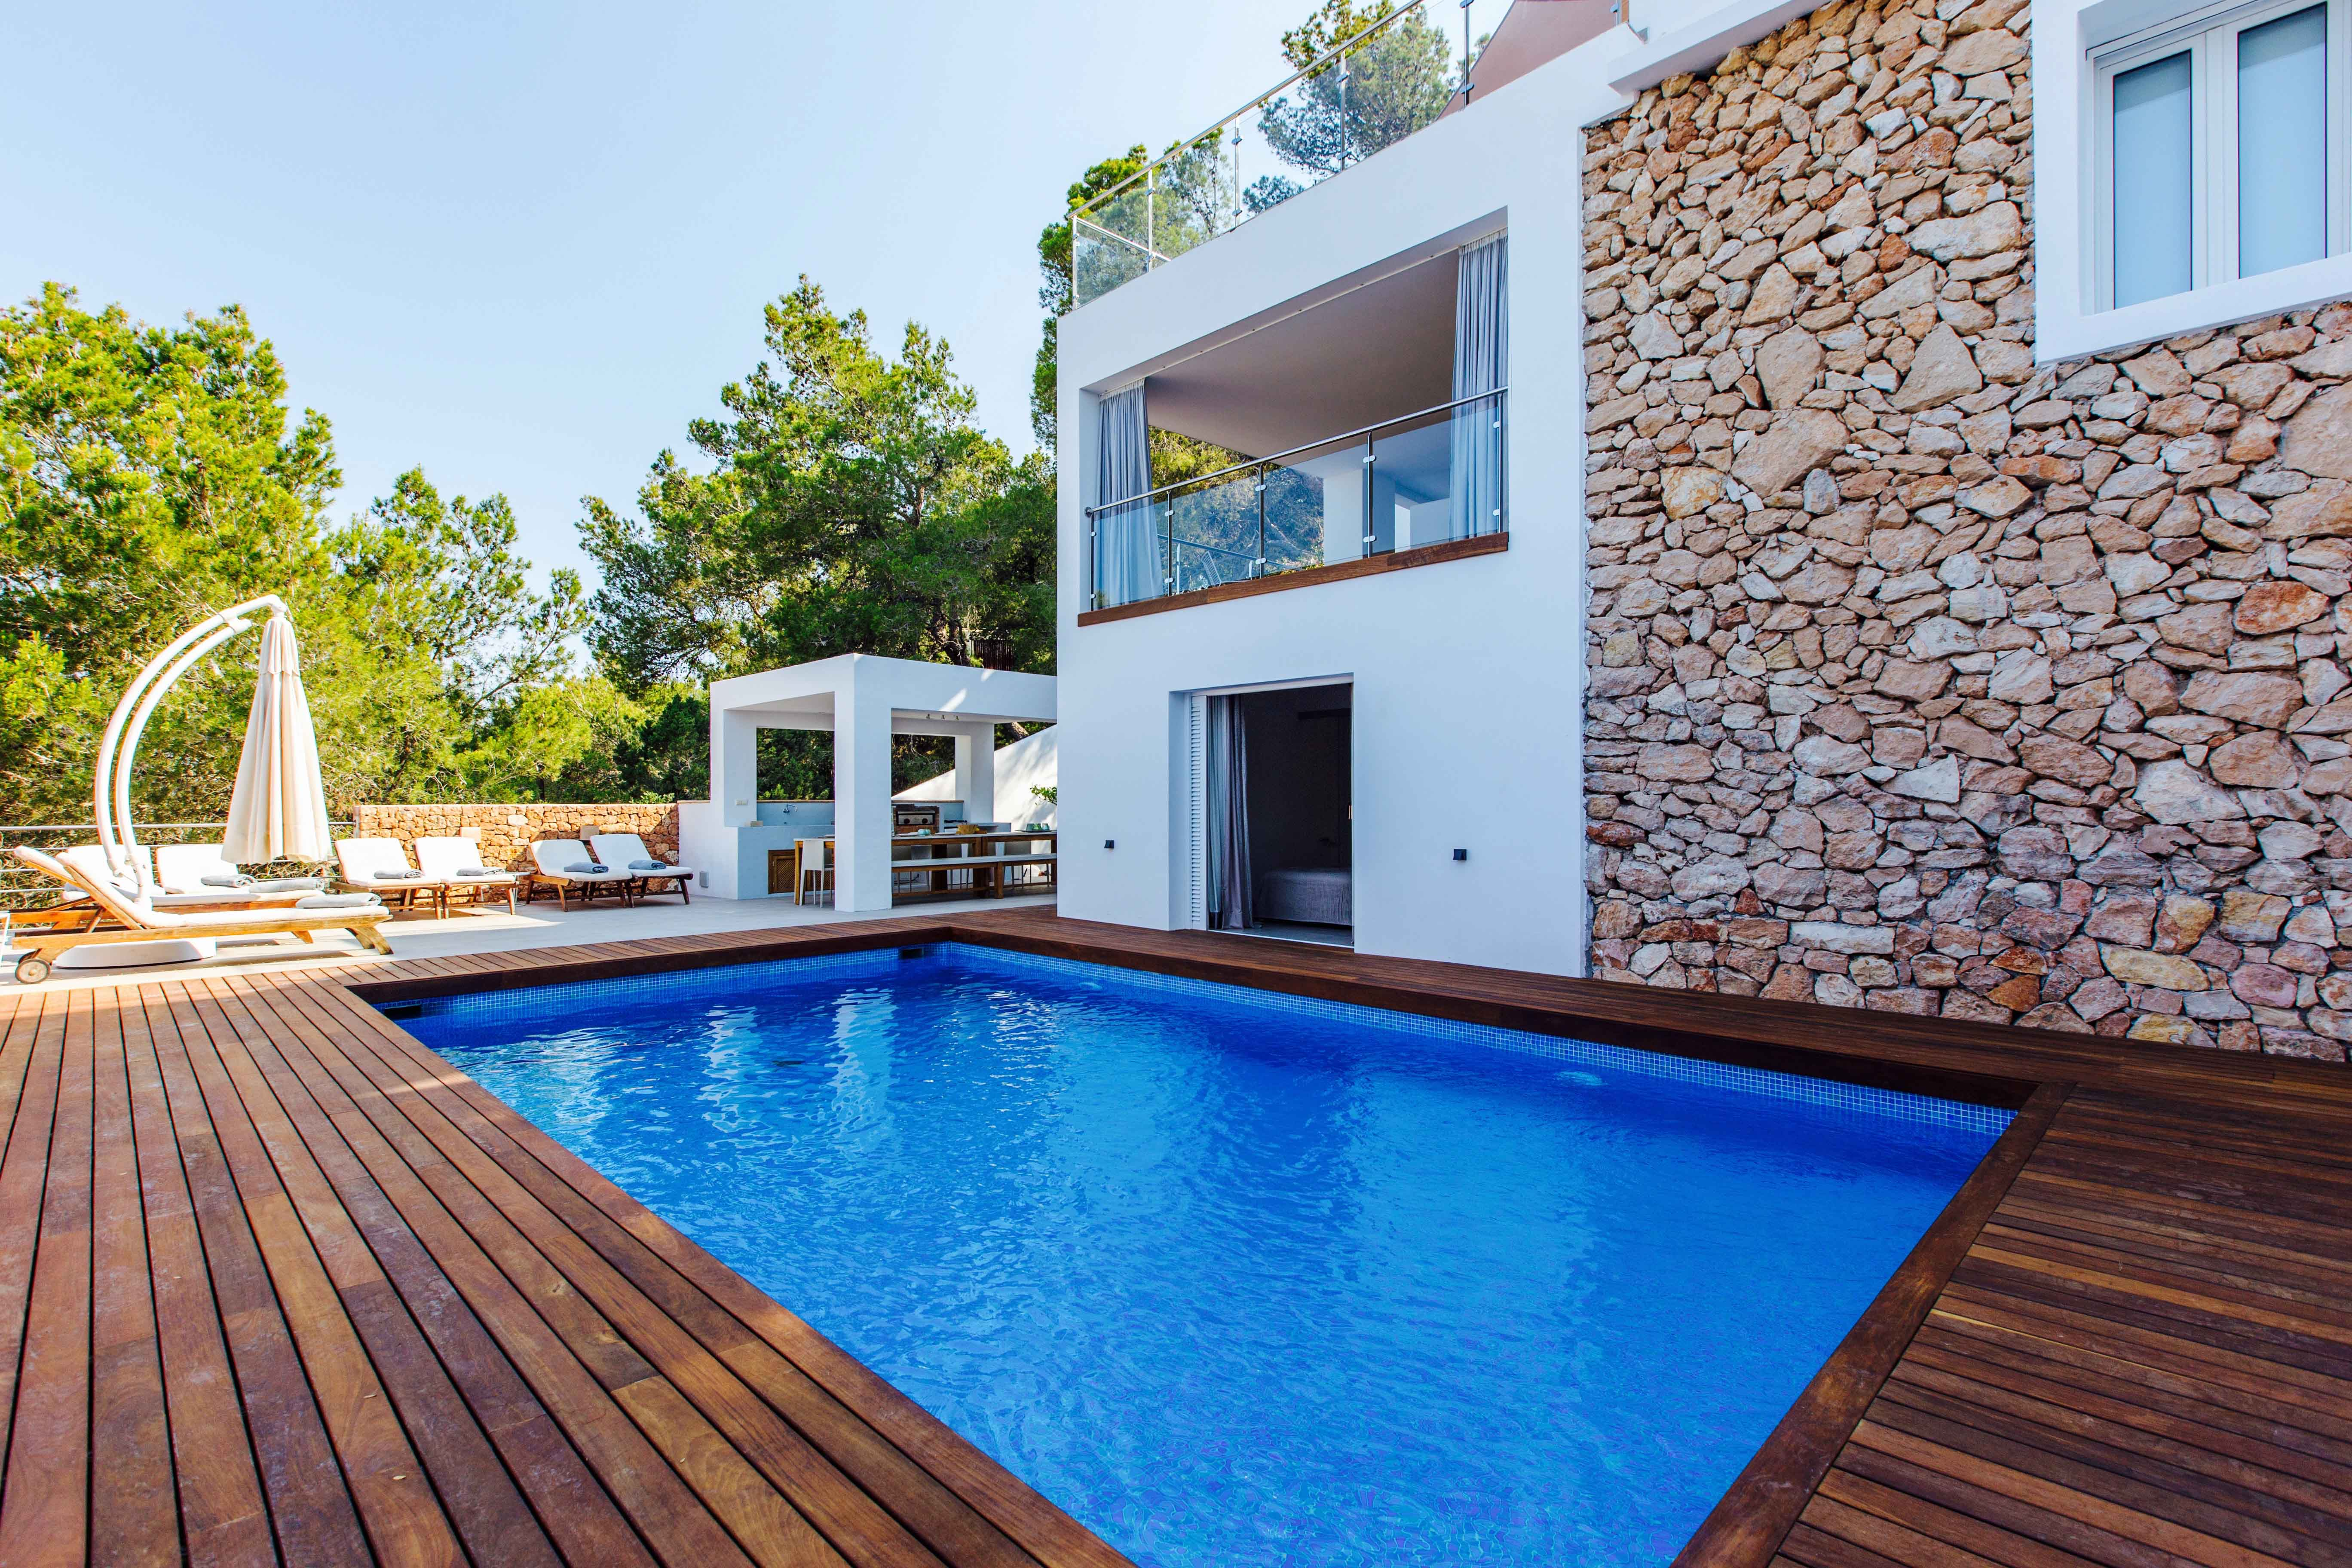 luxury villa rental, Spain, ESPIBI 1810